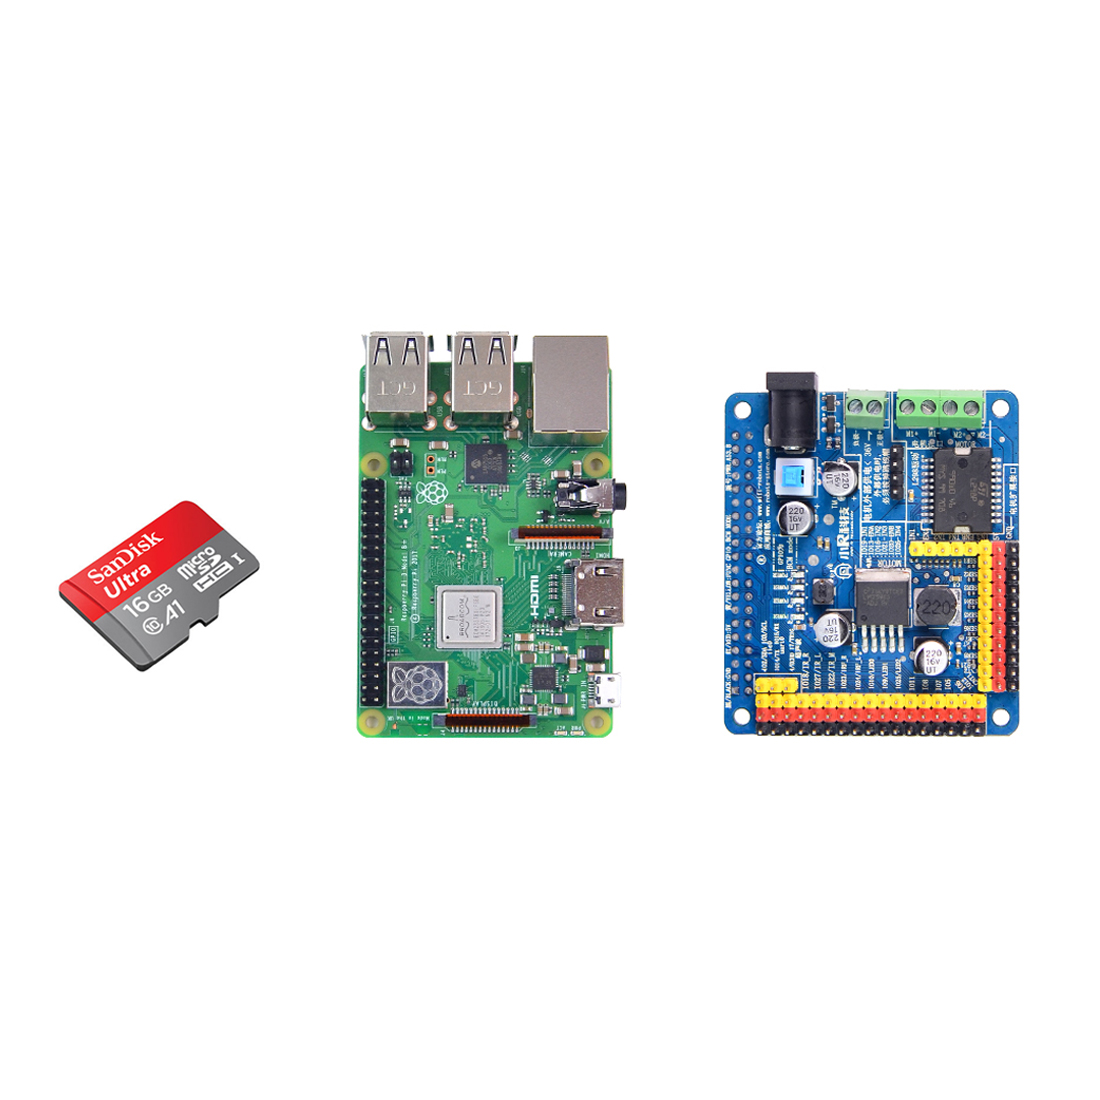 2GB RAM Raspberry PI Development Board With Expansion Board And 16GB Memory Card